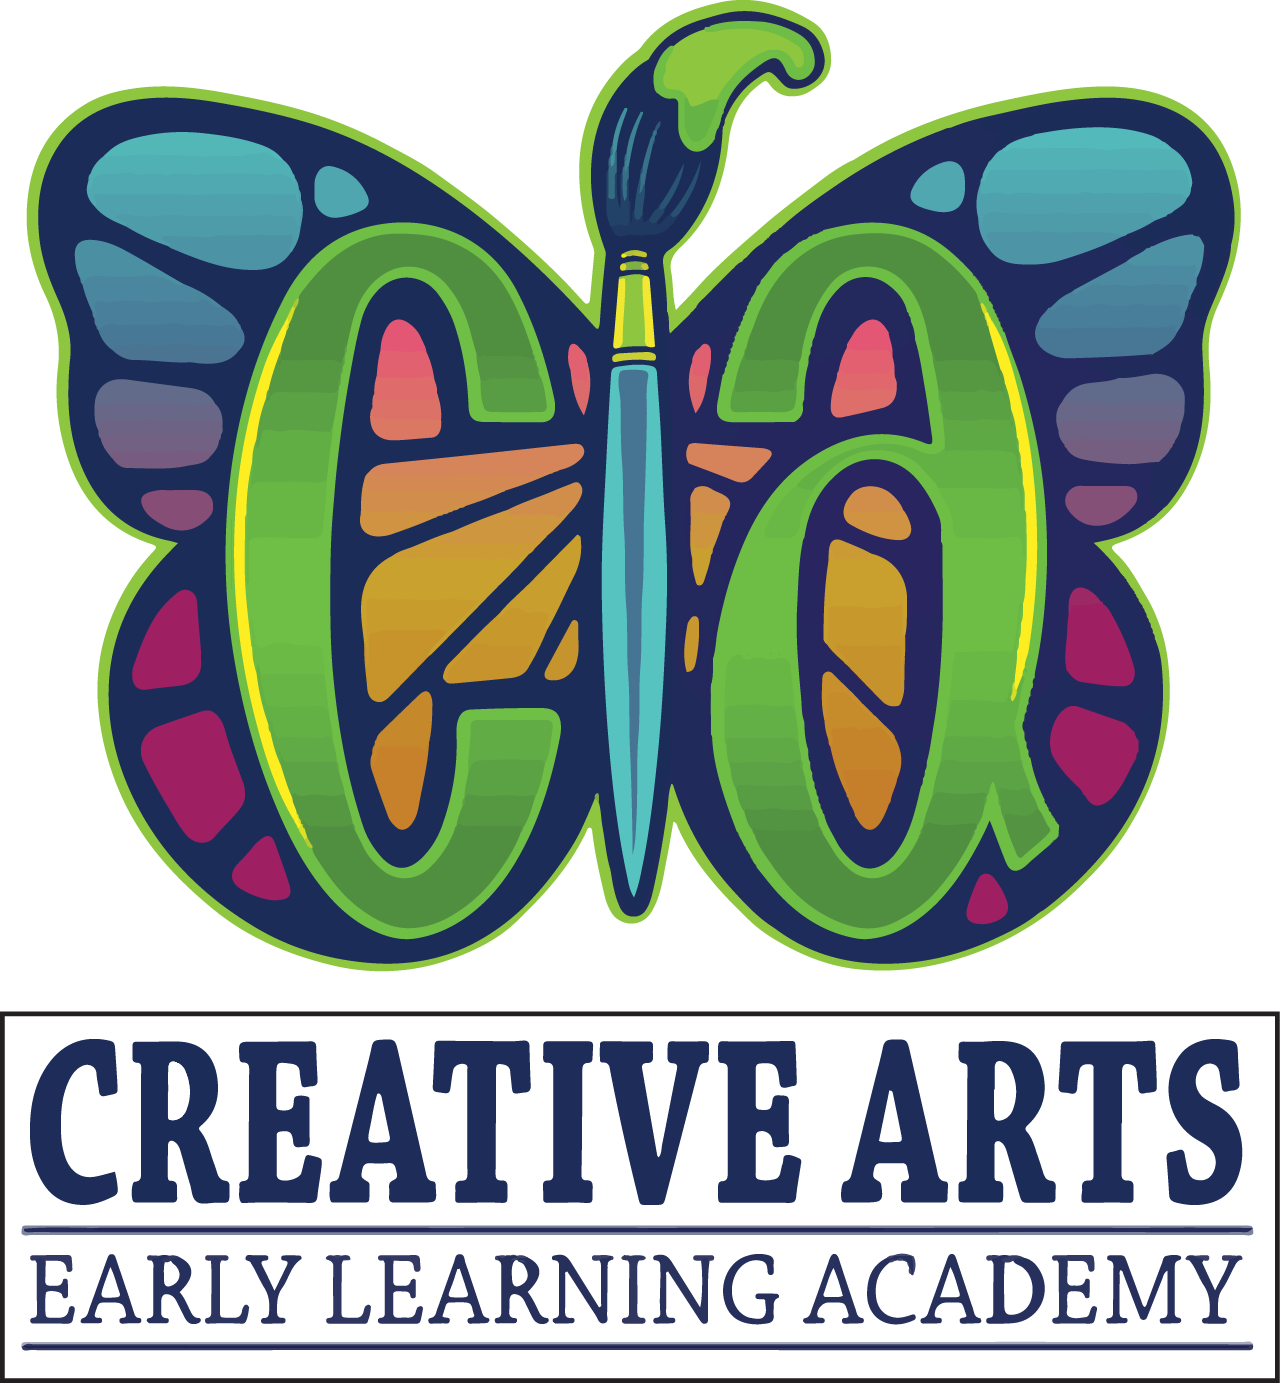 CREATIVE ARTS | EARLY LEARNING ACADEMY